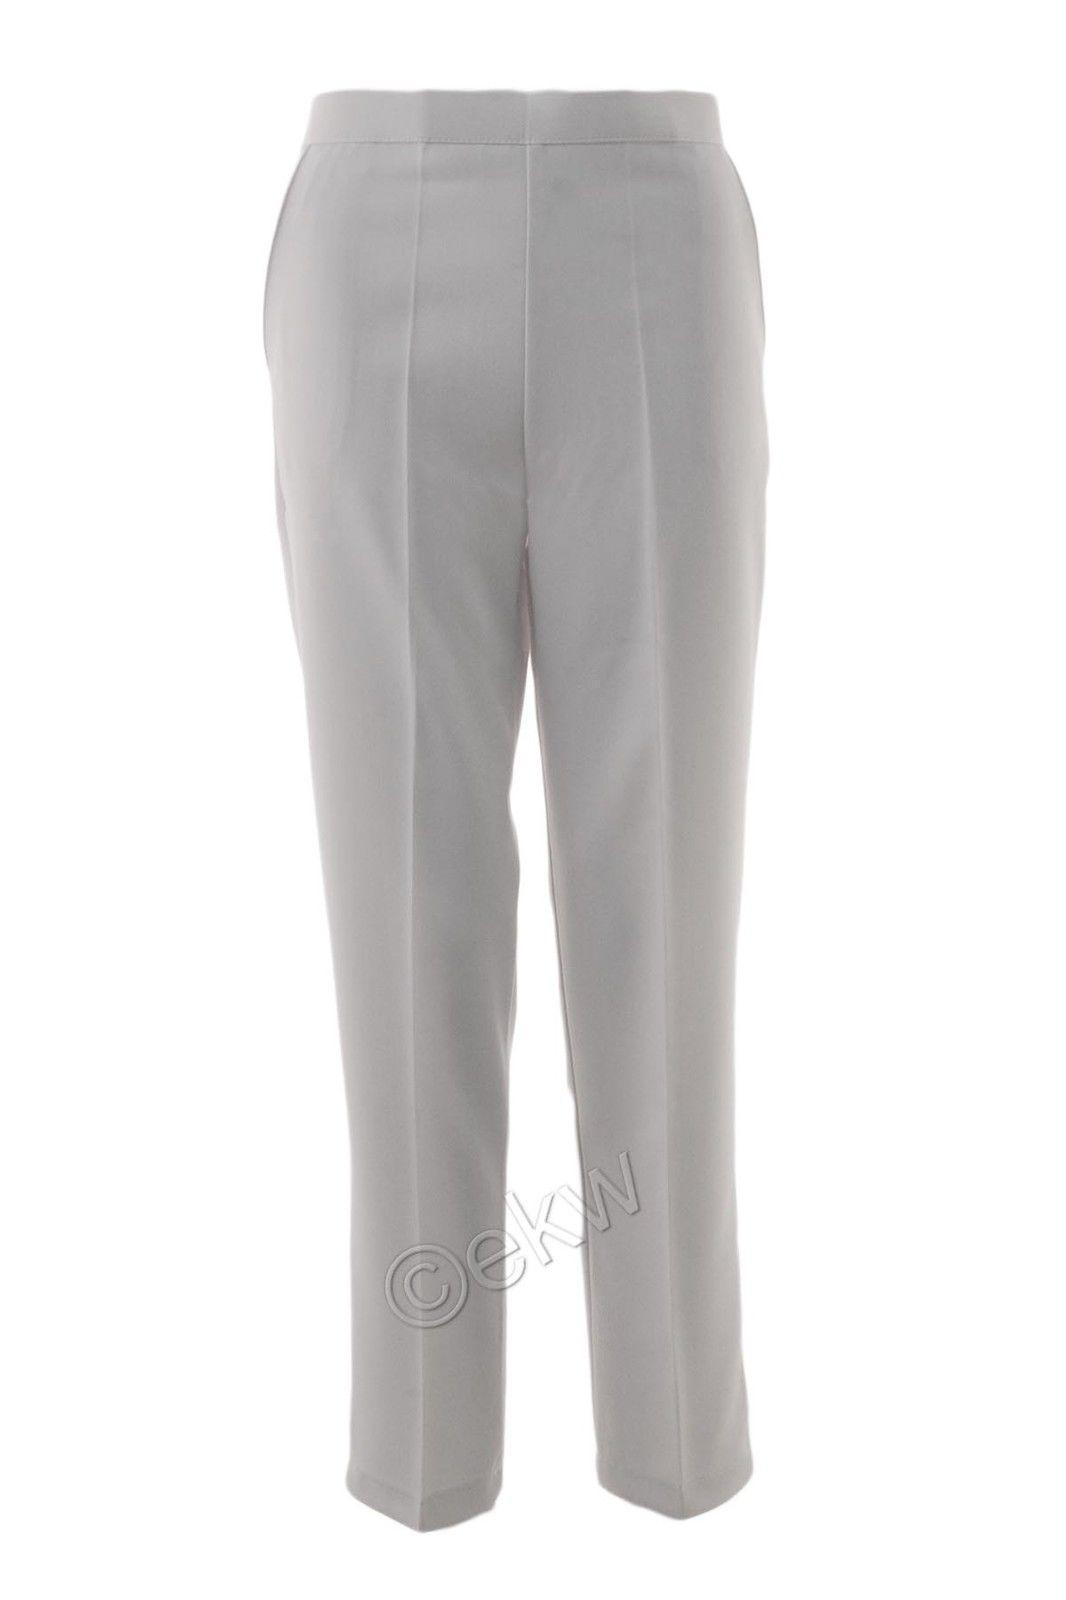 "LADIES STRAIGHT LEG 29/"" TROUSERS GREY PLUS SIZE 26-32"